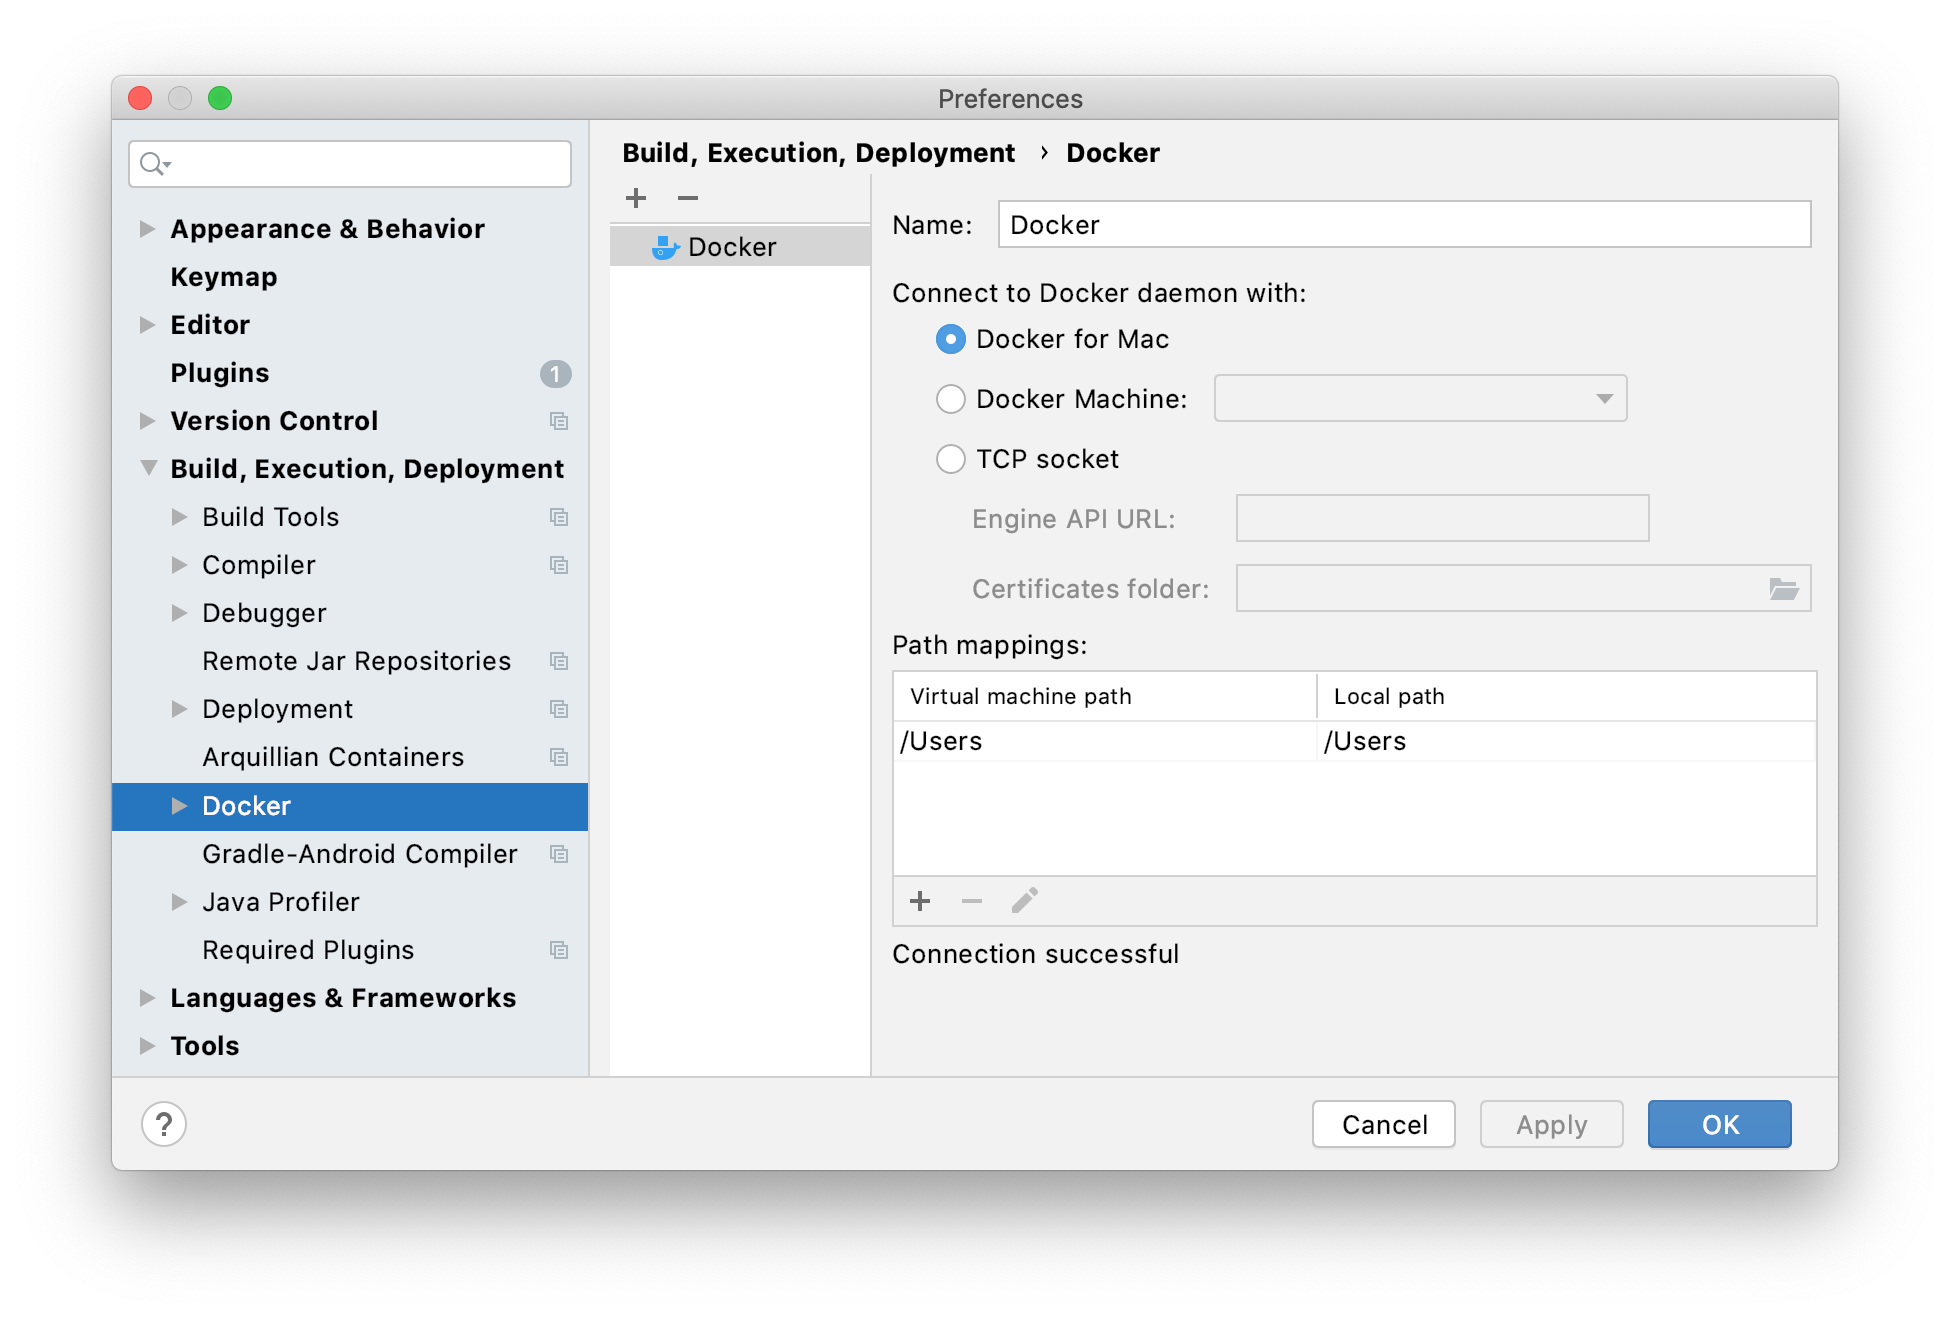 The Docker connection settings